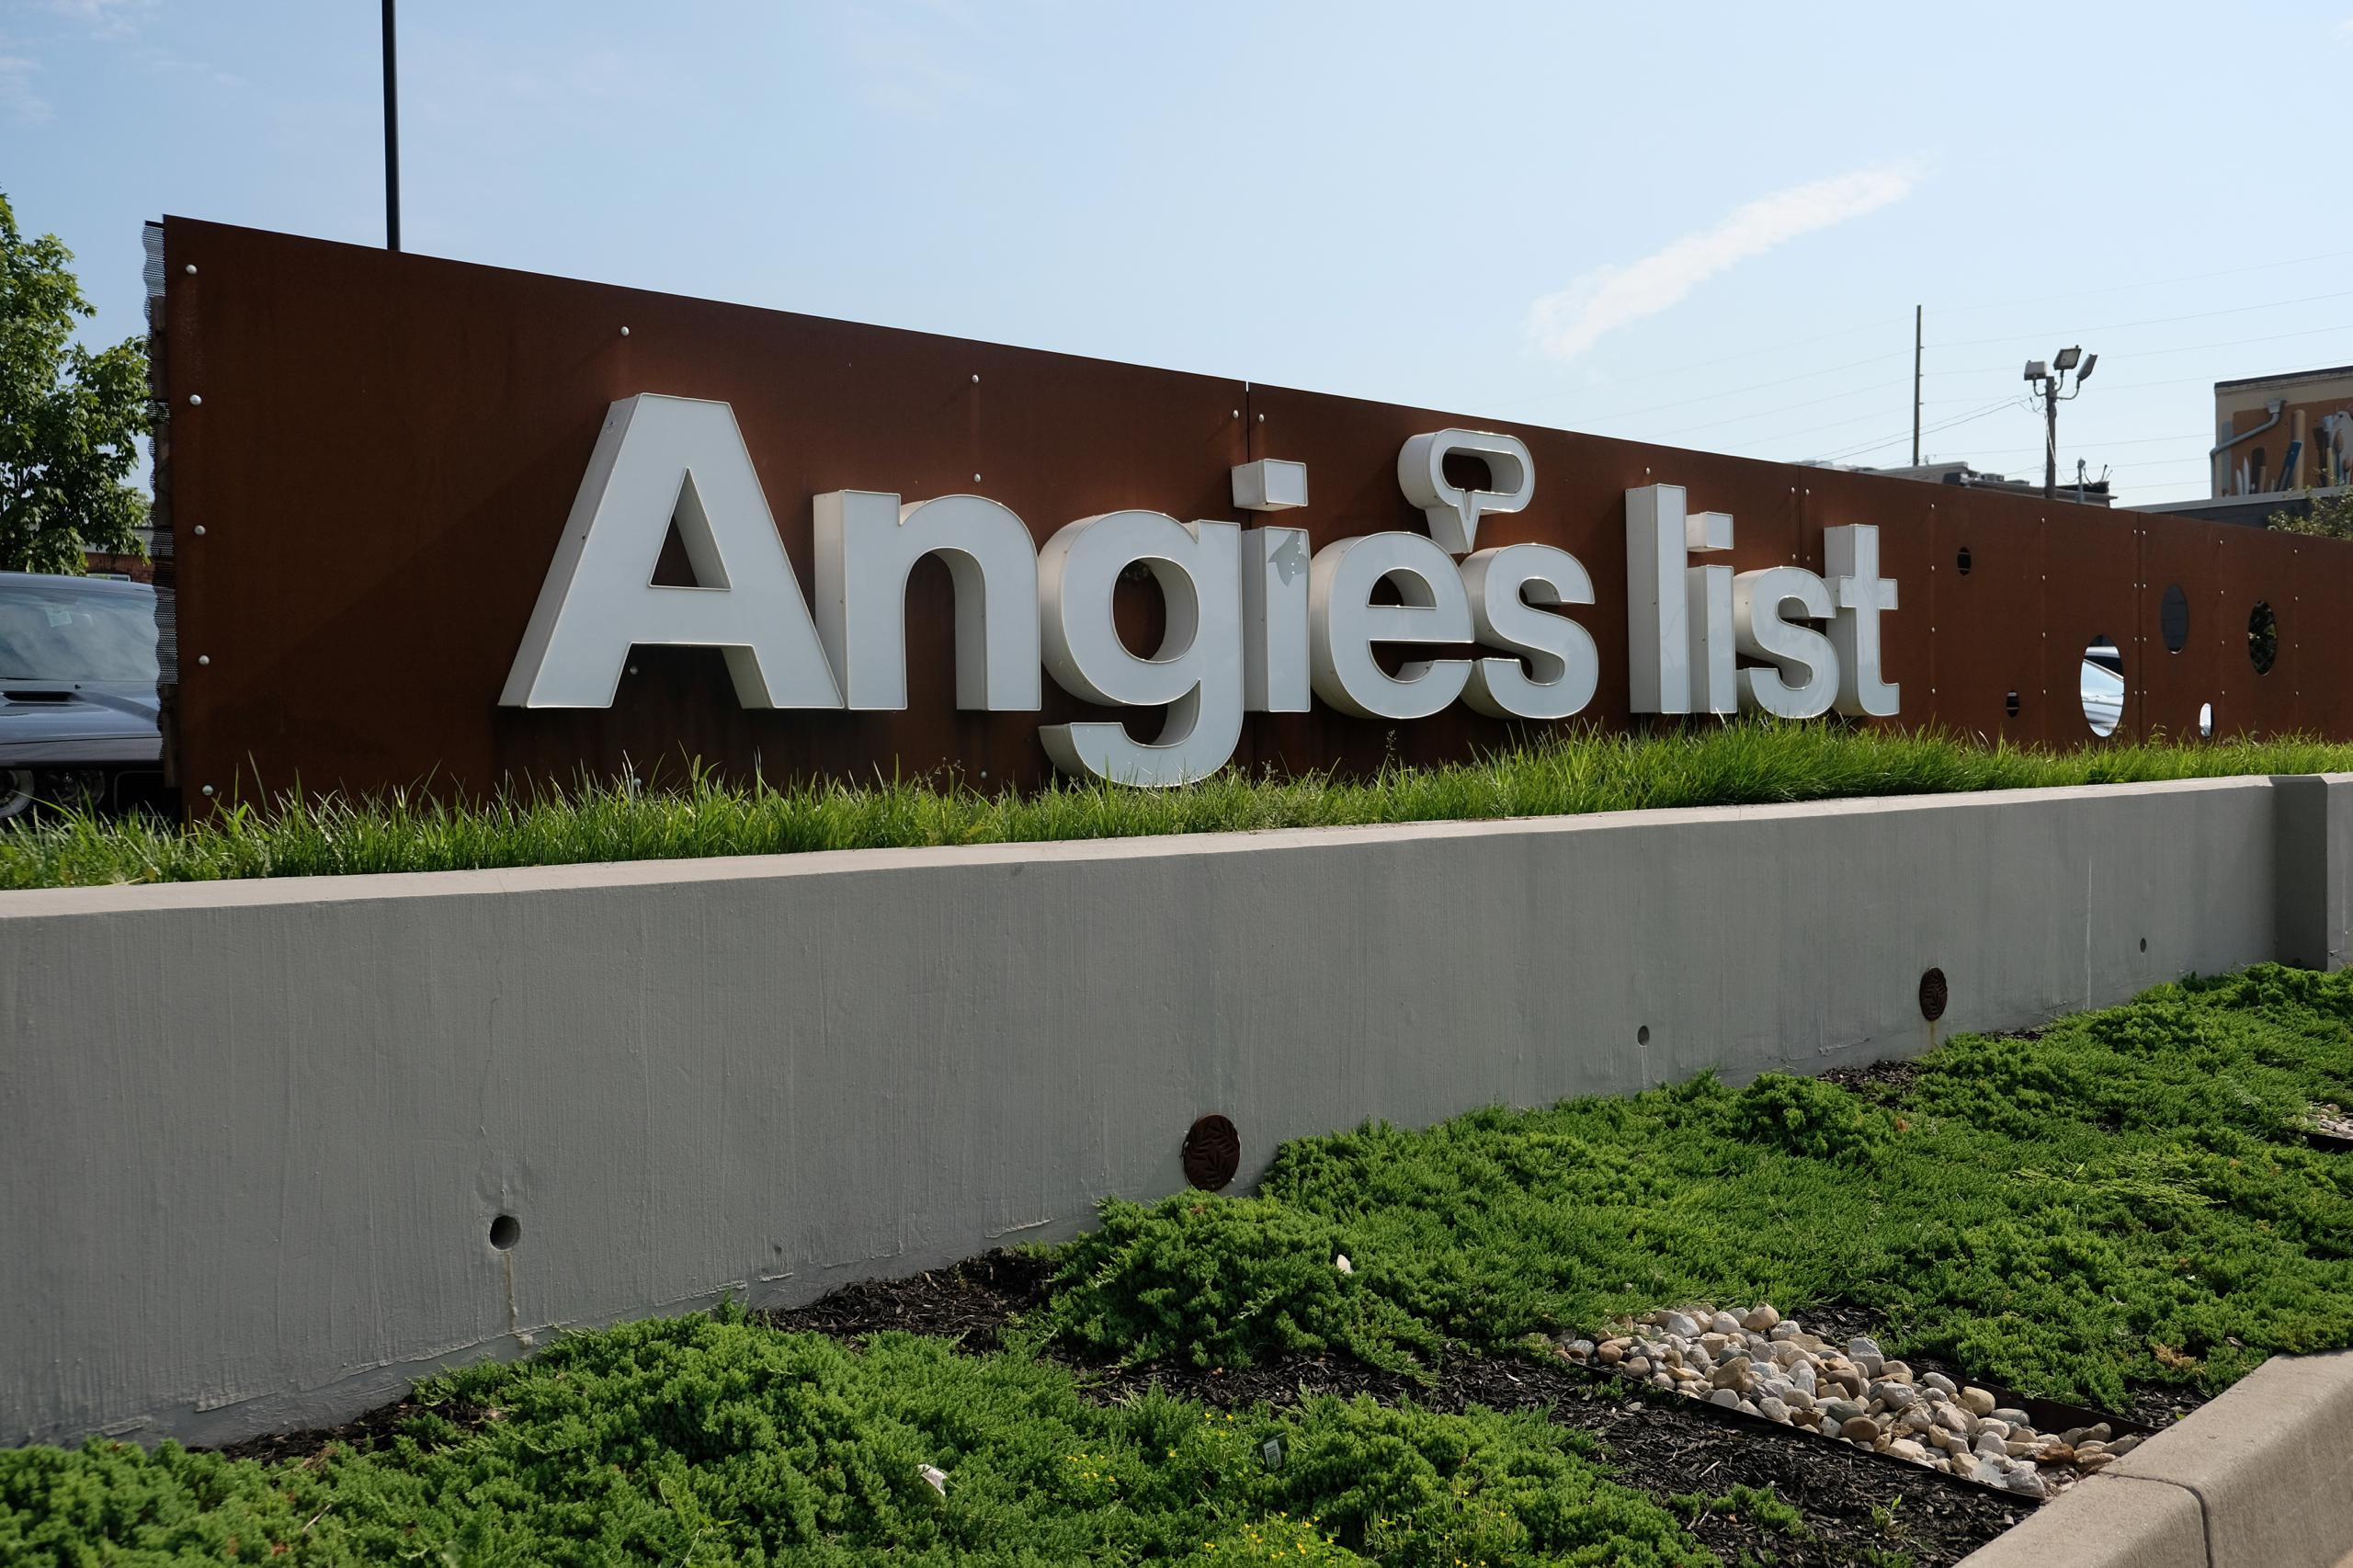 Angie's List's corporate headquarters in Indianapolis, Indiana.